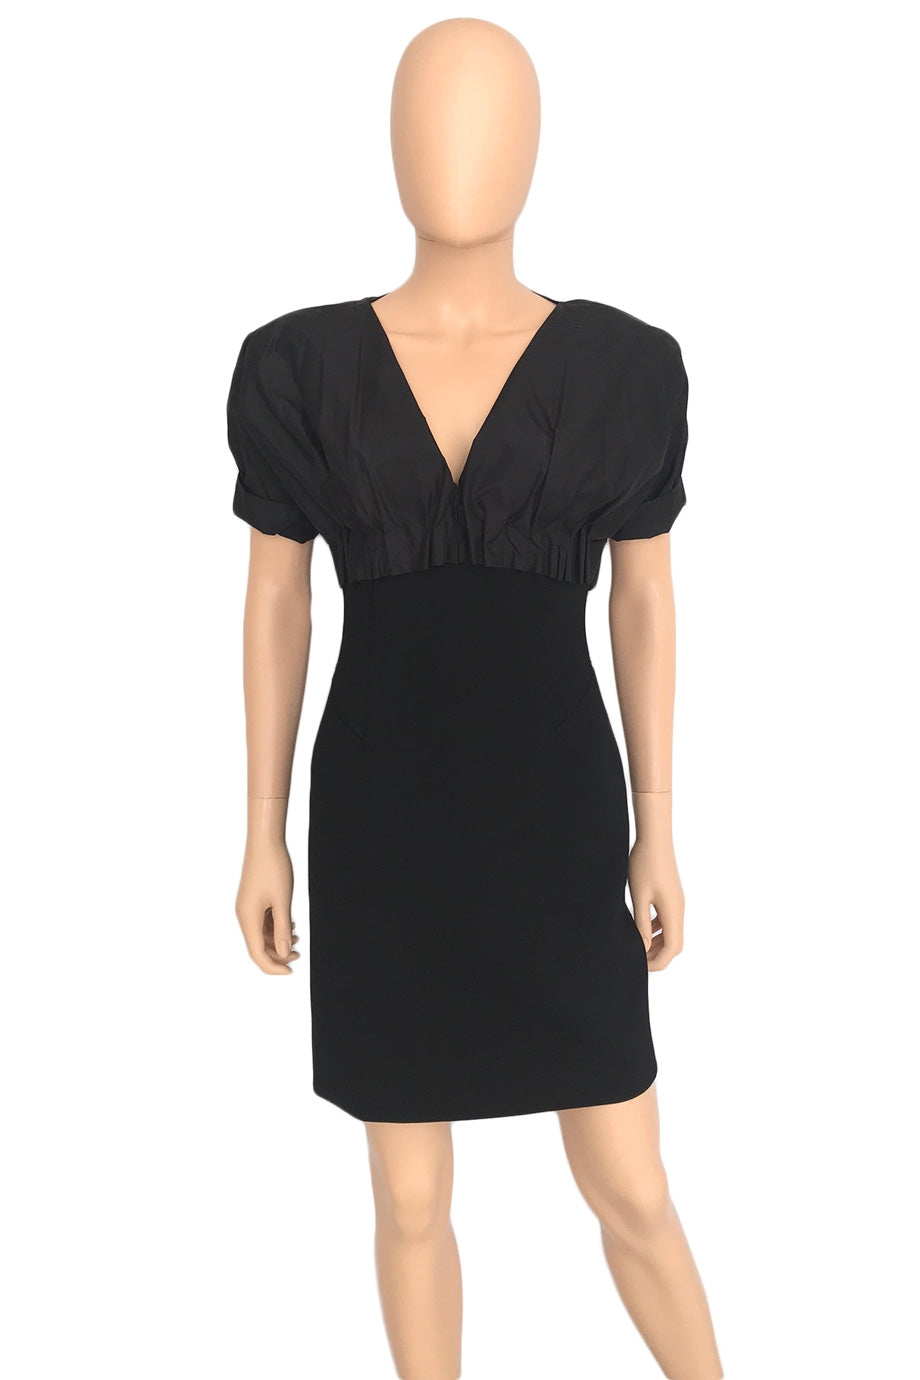 Brioni Black Short Sleeve Wool + Taffeta Cocktail Mini Dress / Sz 40-Style Therapy